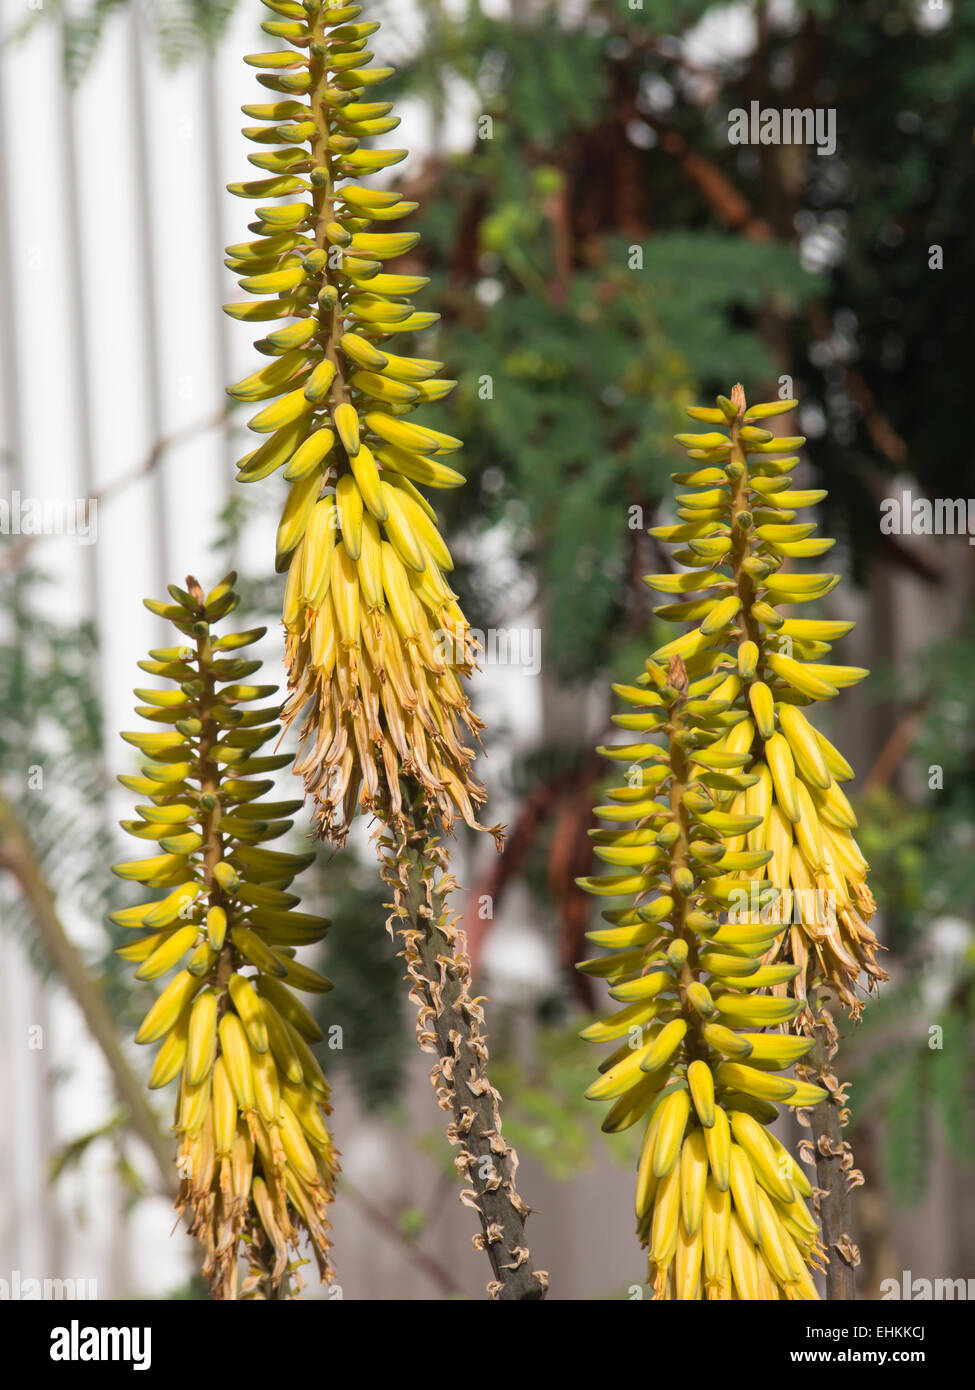 Aloe Vera Yellow Flowers From The Succulent Plant Cultivated In